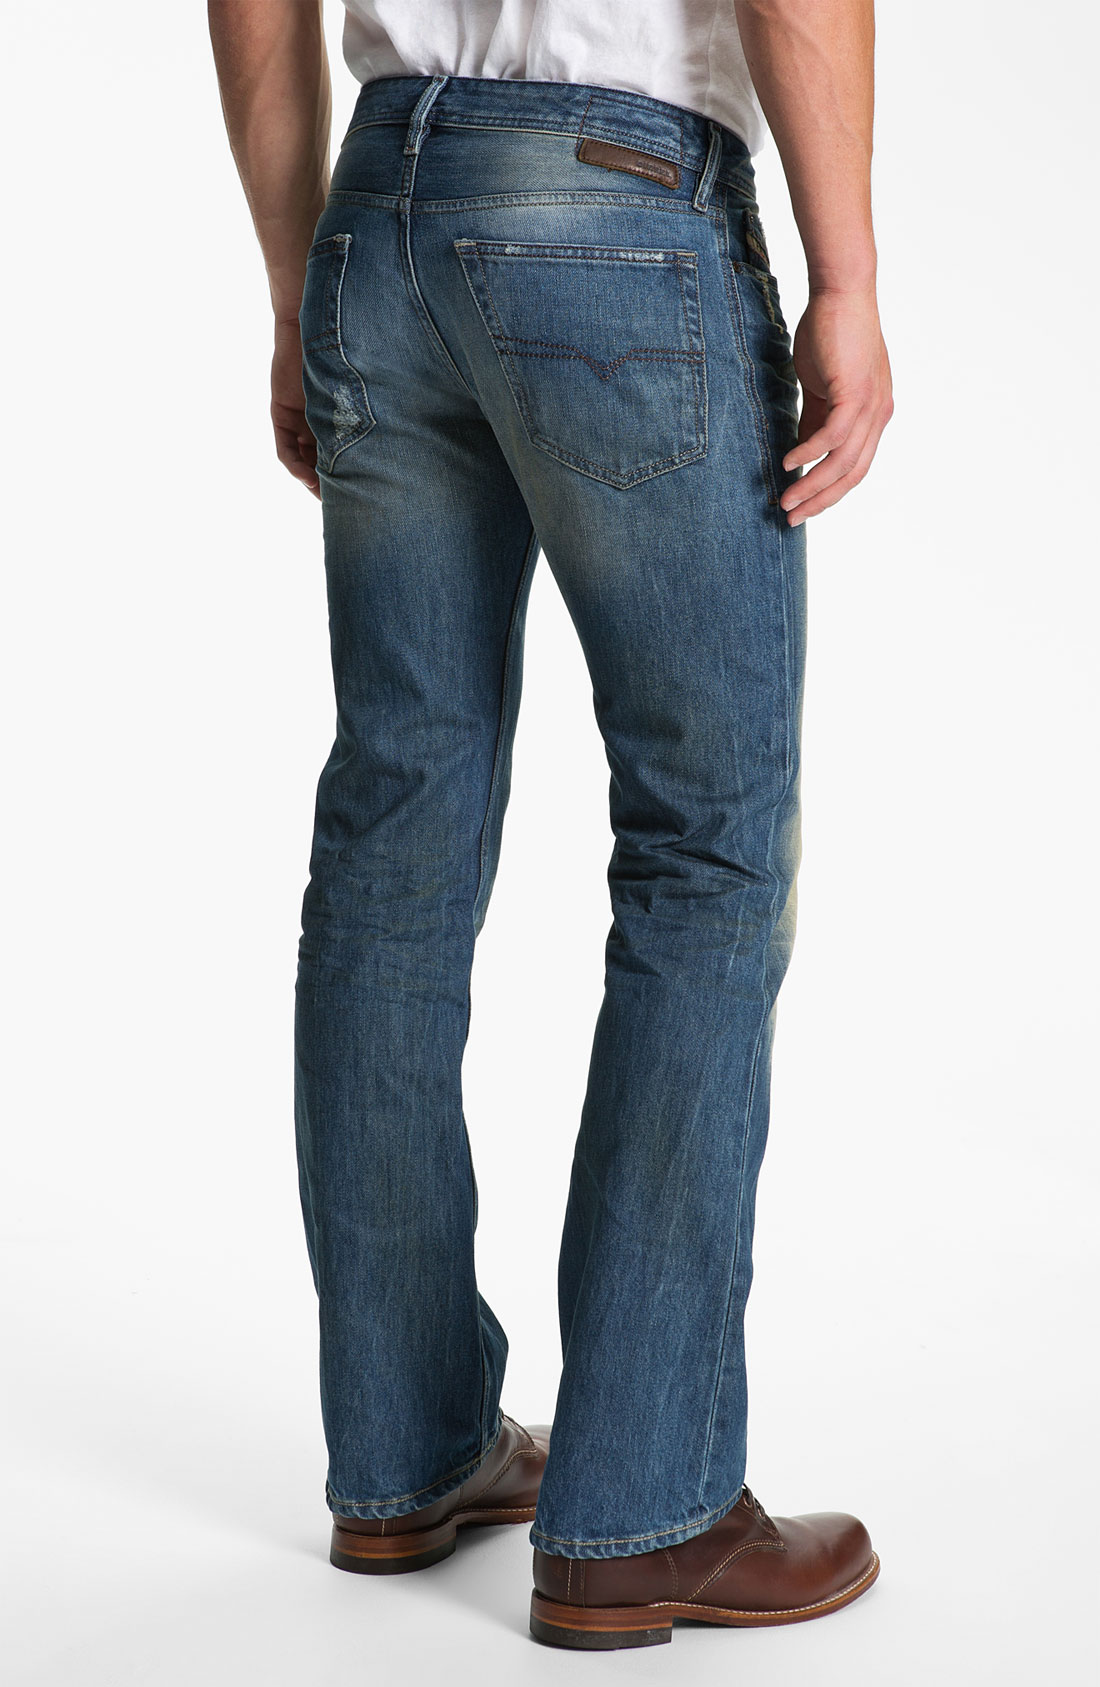 Shop Buckle for men's slim fit jeans that are fitted through the thigh and knee. Find slim fit jeans in variety of washes and leg openings.